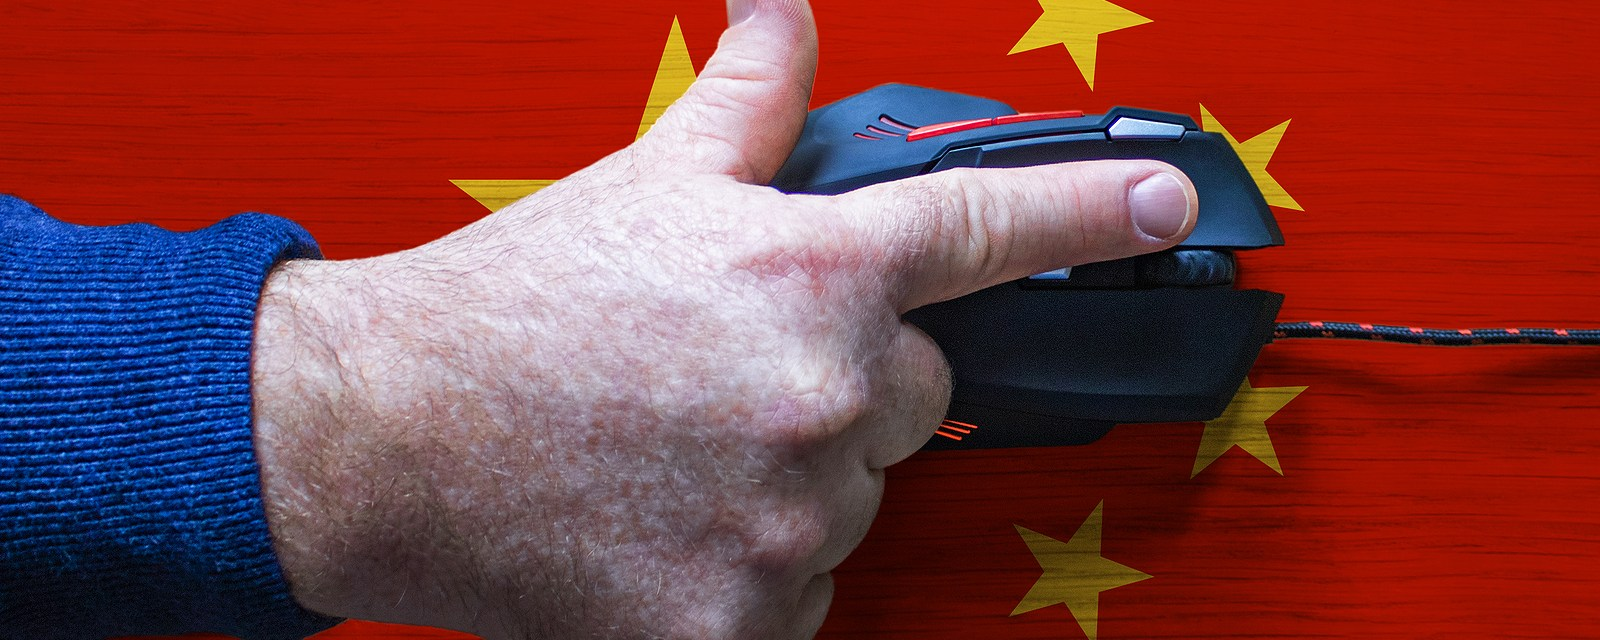 CISA Warns on Possible Cyber Attacks due to Heightened U.S. – China Tensions